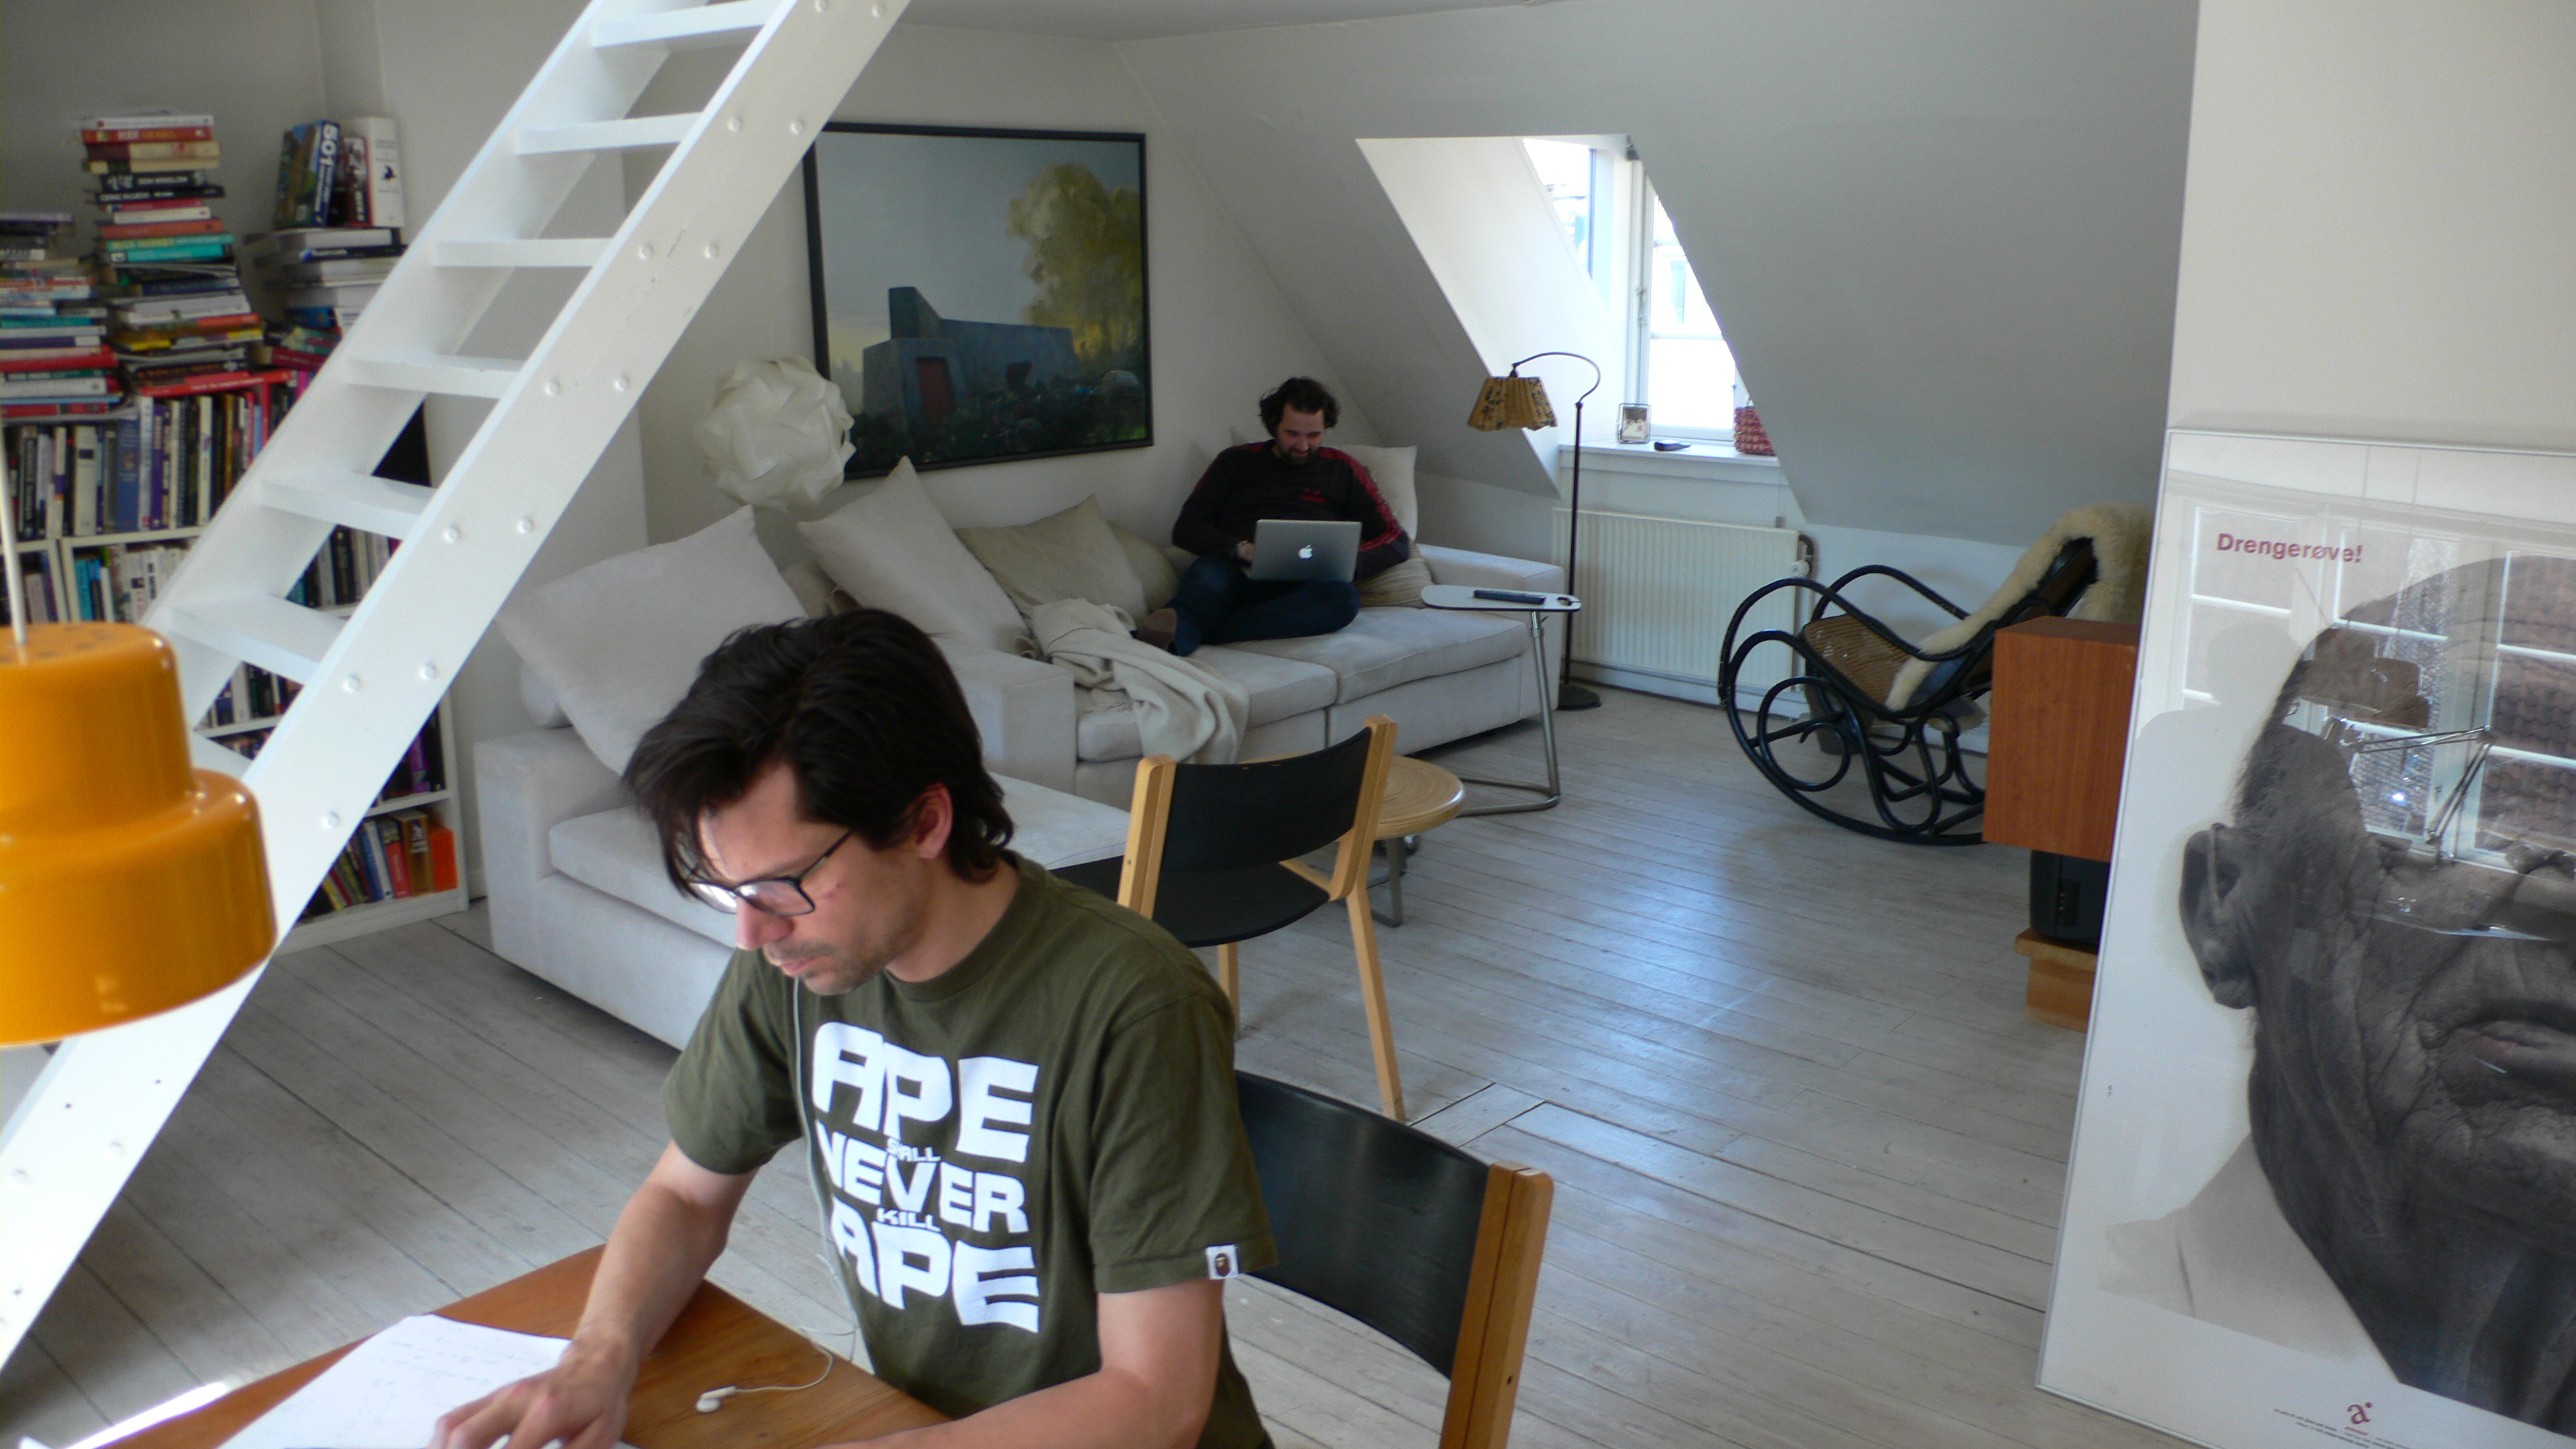 Primdahl (at table) and Svane working from the Copenhagen loft where Zendesk was founded in 2007.